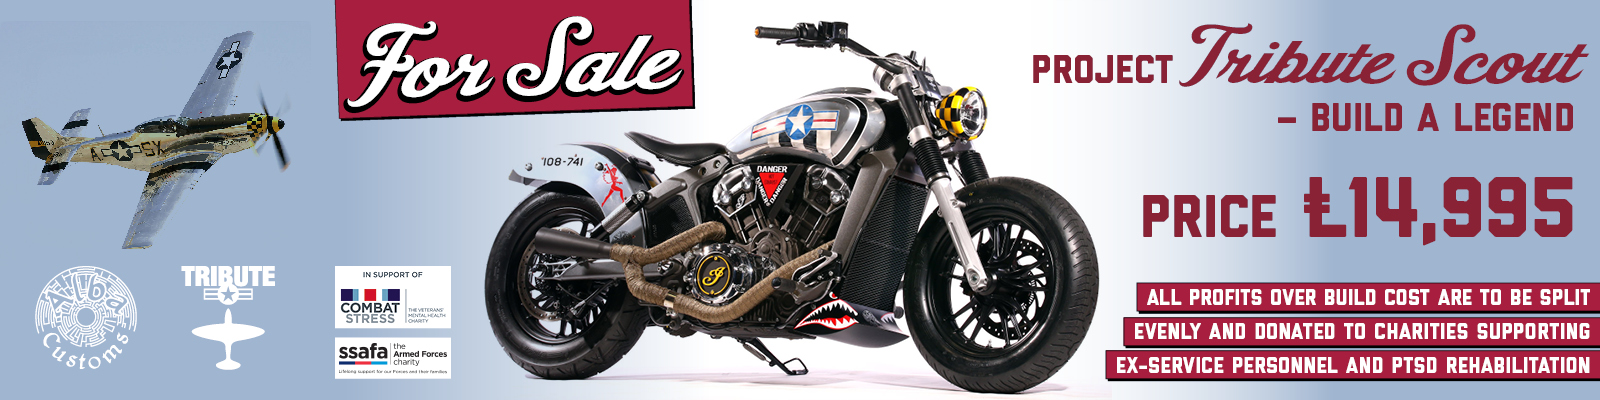 2016 Project Scout Tribute Bike for sale